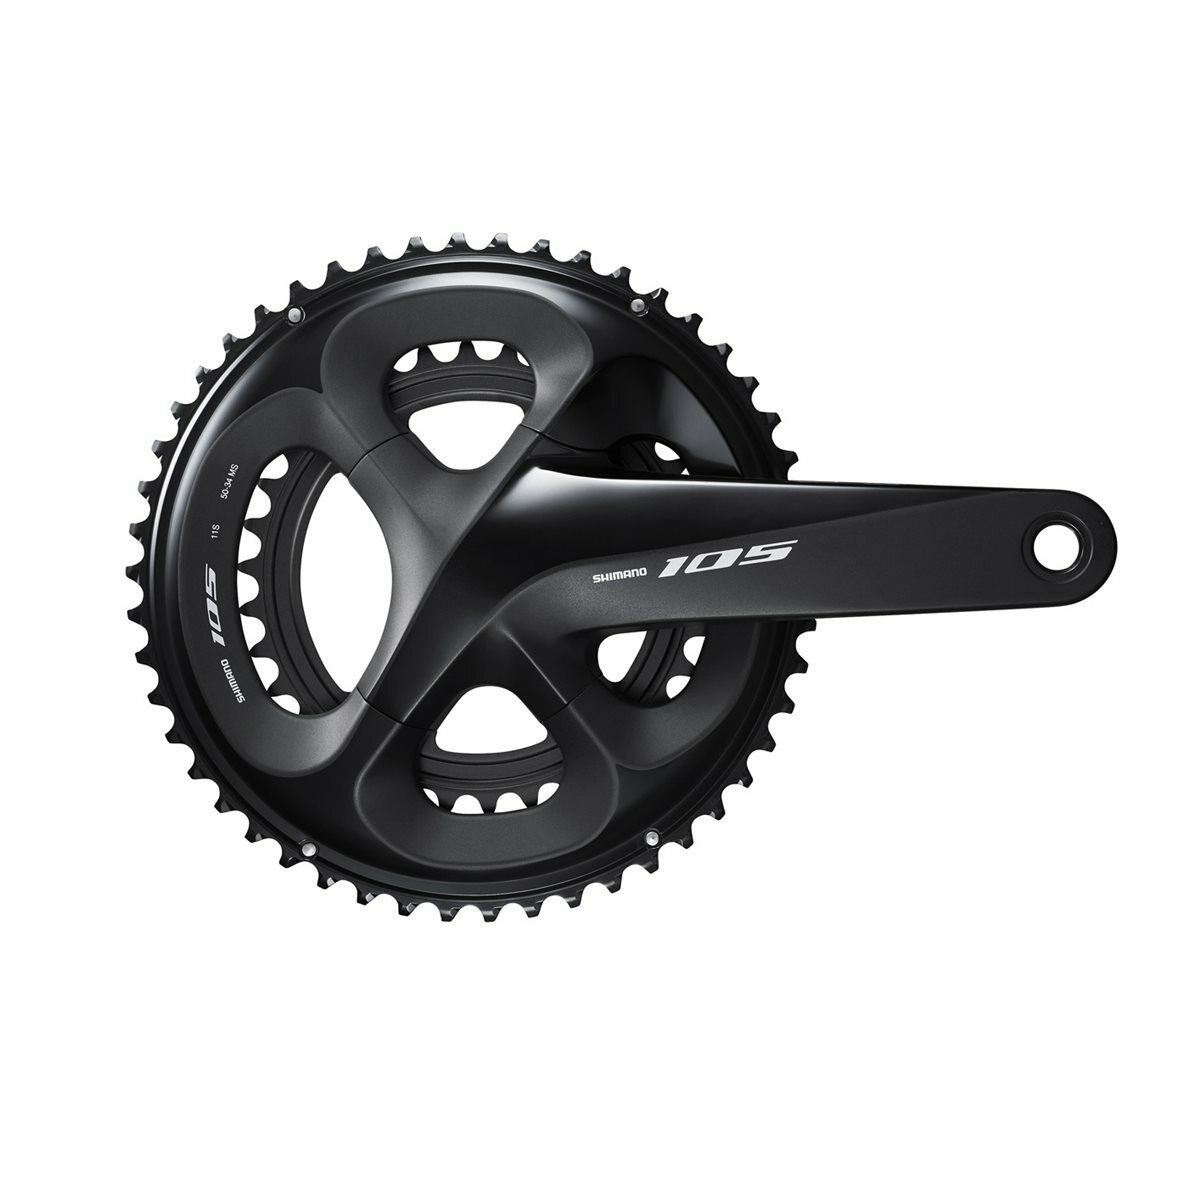 Guarnitura 105 fc-r7000 50 34t 2x11v 175mm nero SHIMANO bici strada